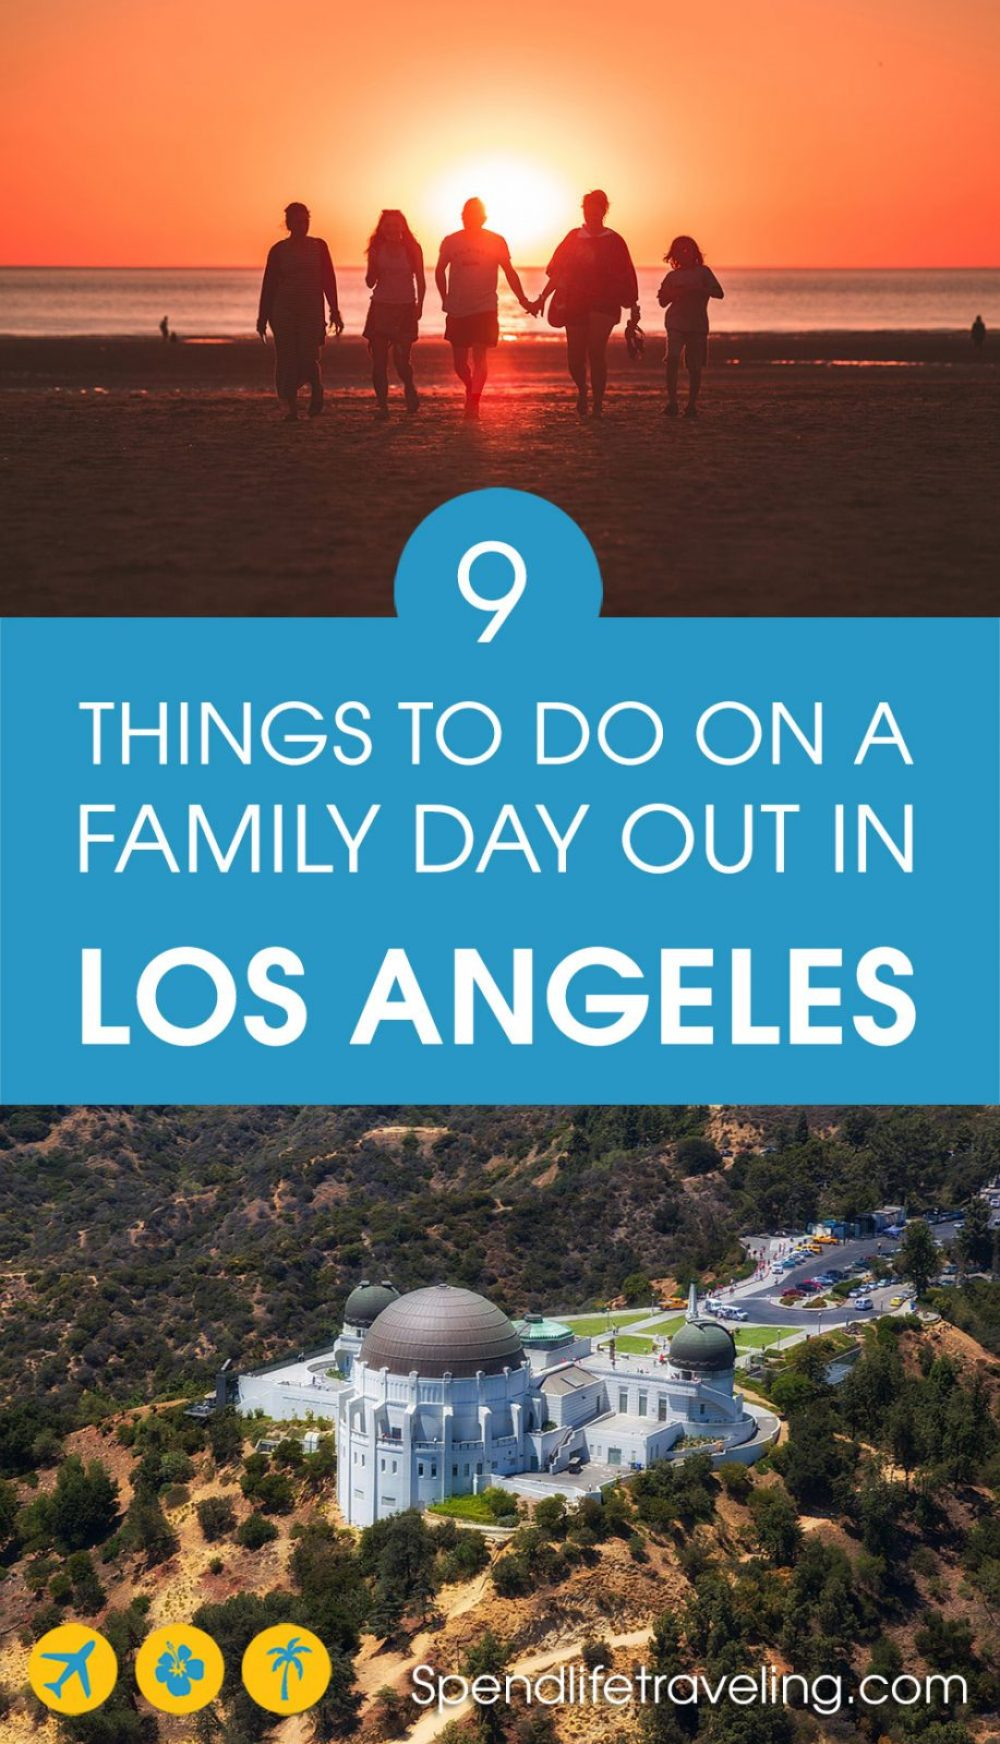 Los Angeles is a city with a lot going on. This is a practical list of fun and affordable things to do in #LA with the family. #LosAngeles #familytravel #visitLosAngeles #visitCalifornia